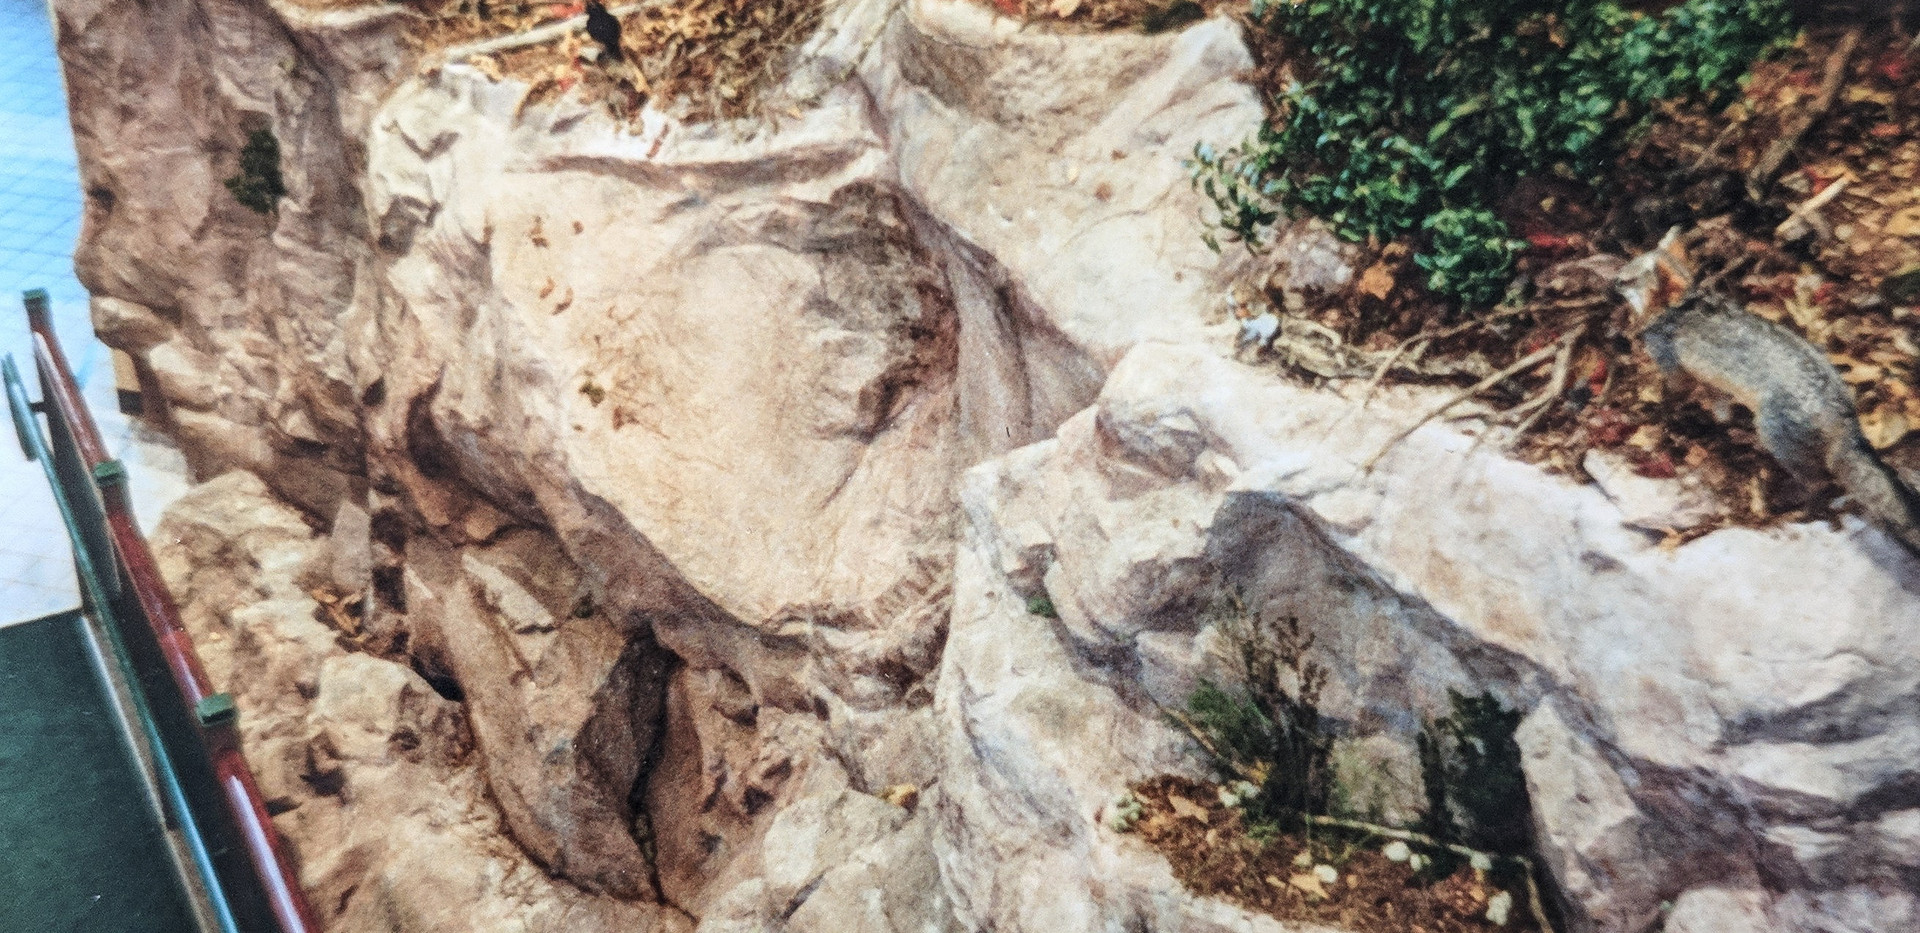 Close up of the artificial rock